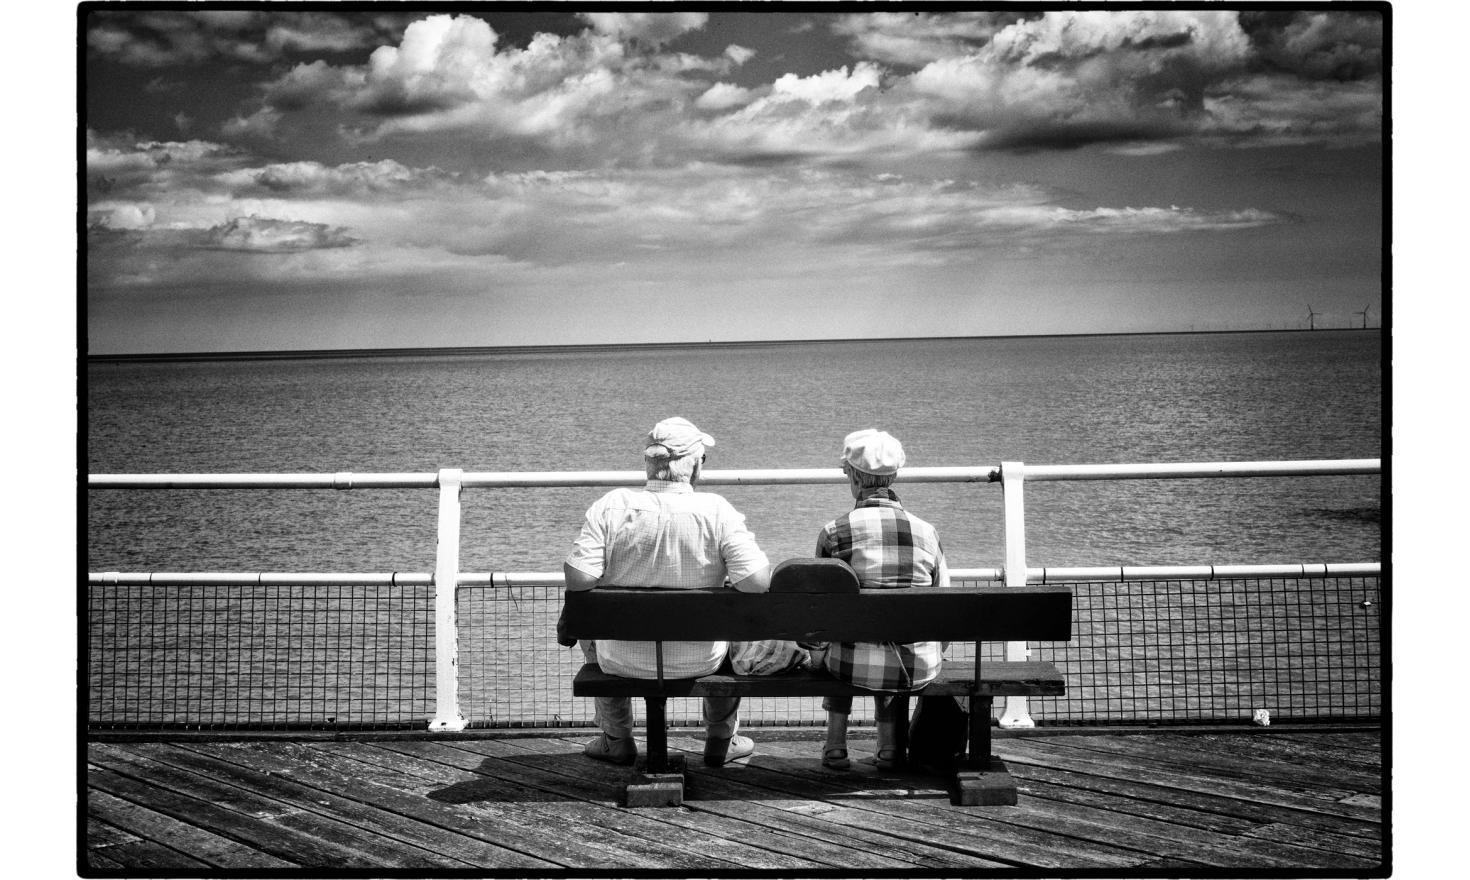 On the pier. Clacton on sea, England. July 2016